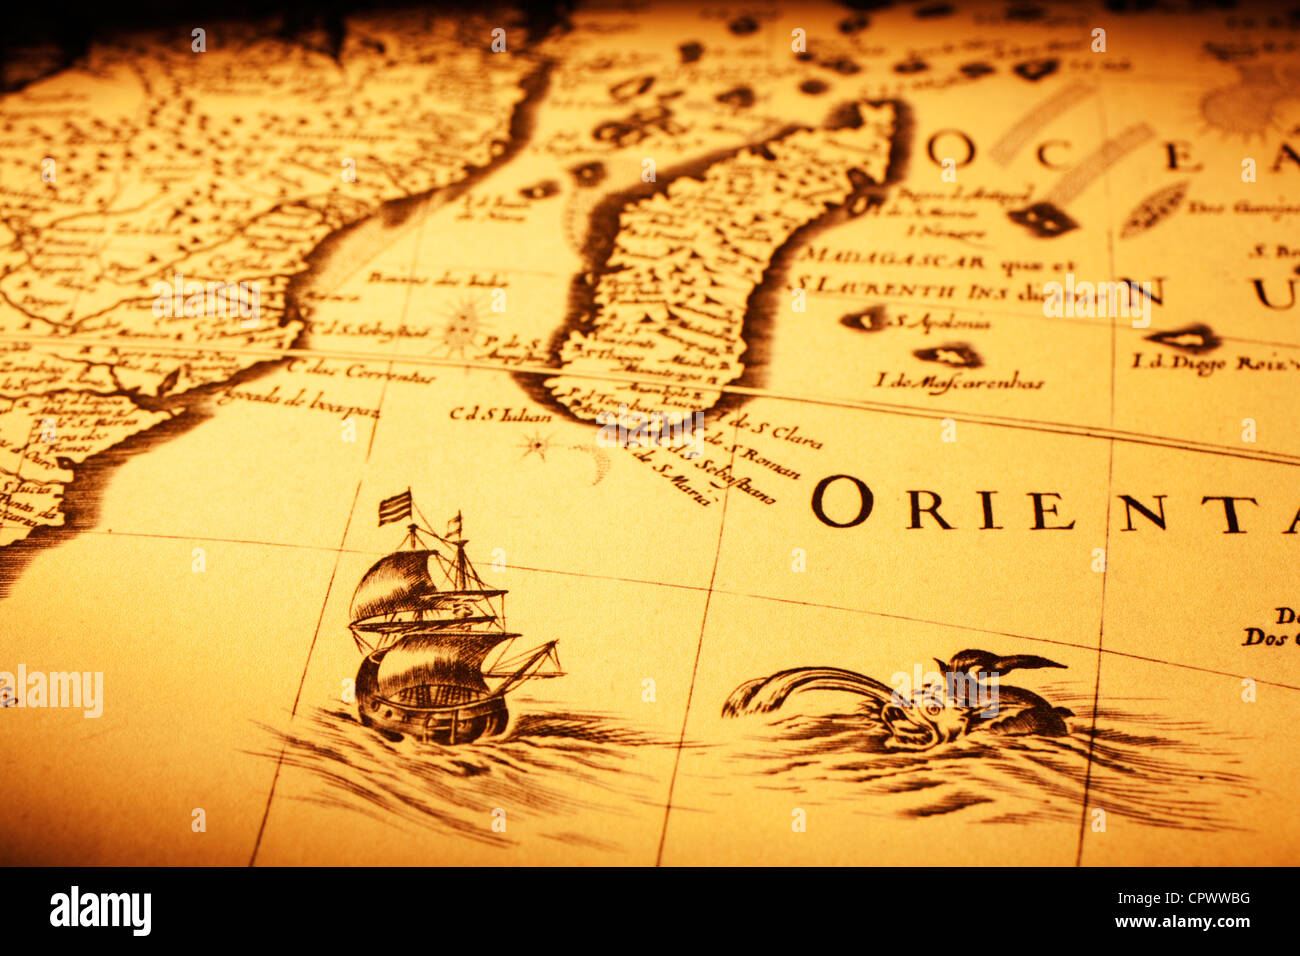 Detail from an old map showing a ship off Madagascar, a sea monster and the coast of Africa. - Stock Image